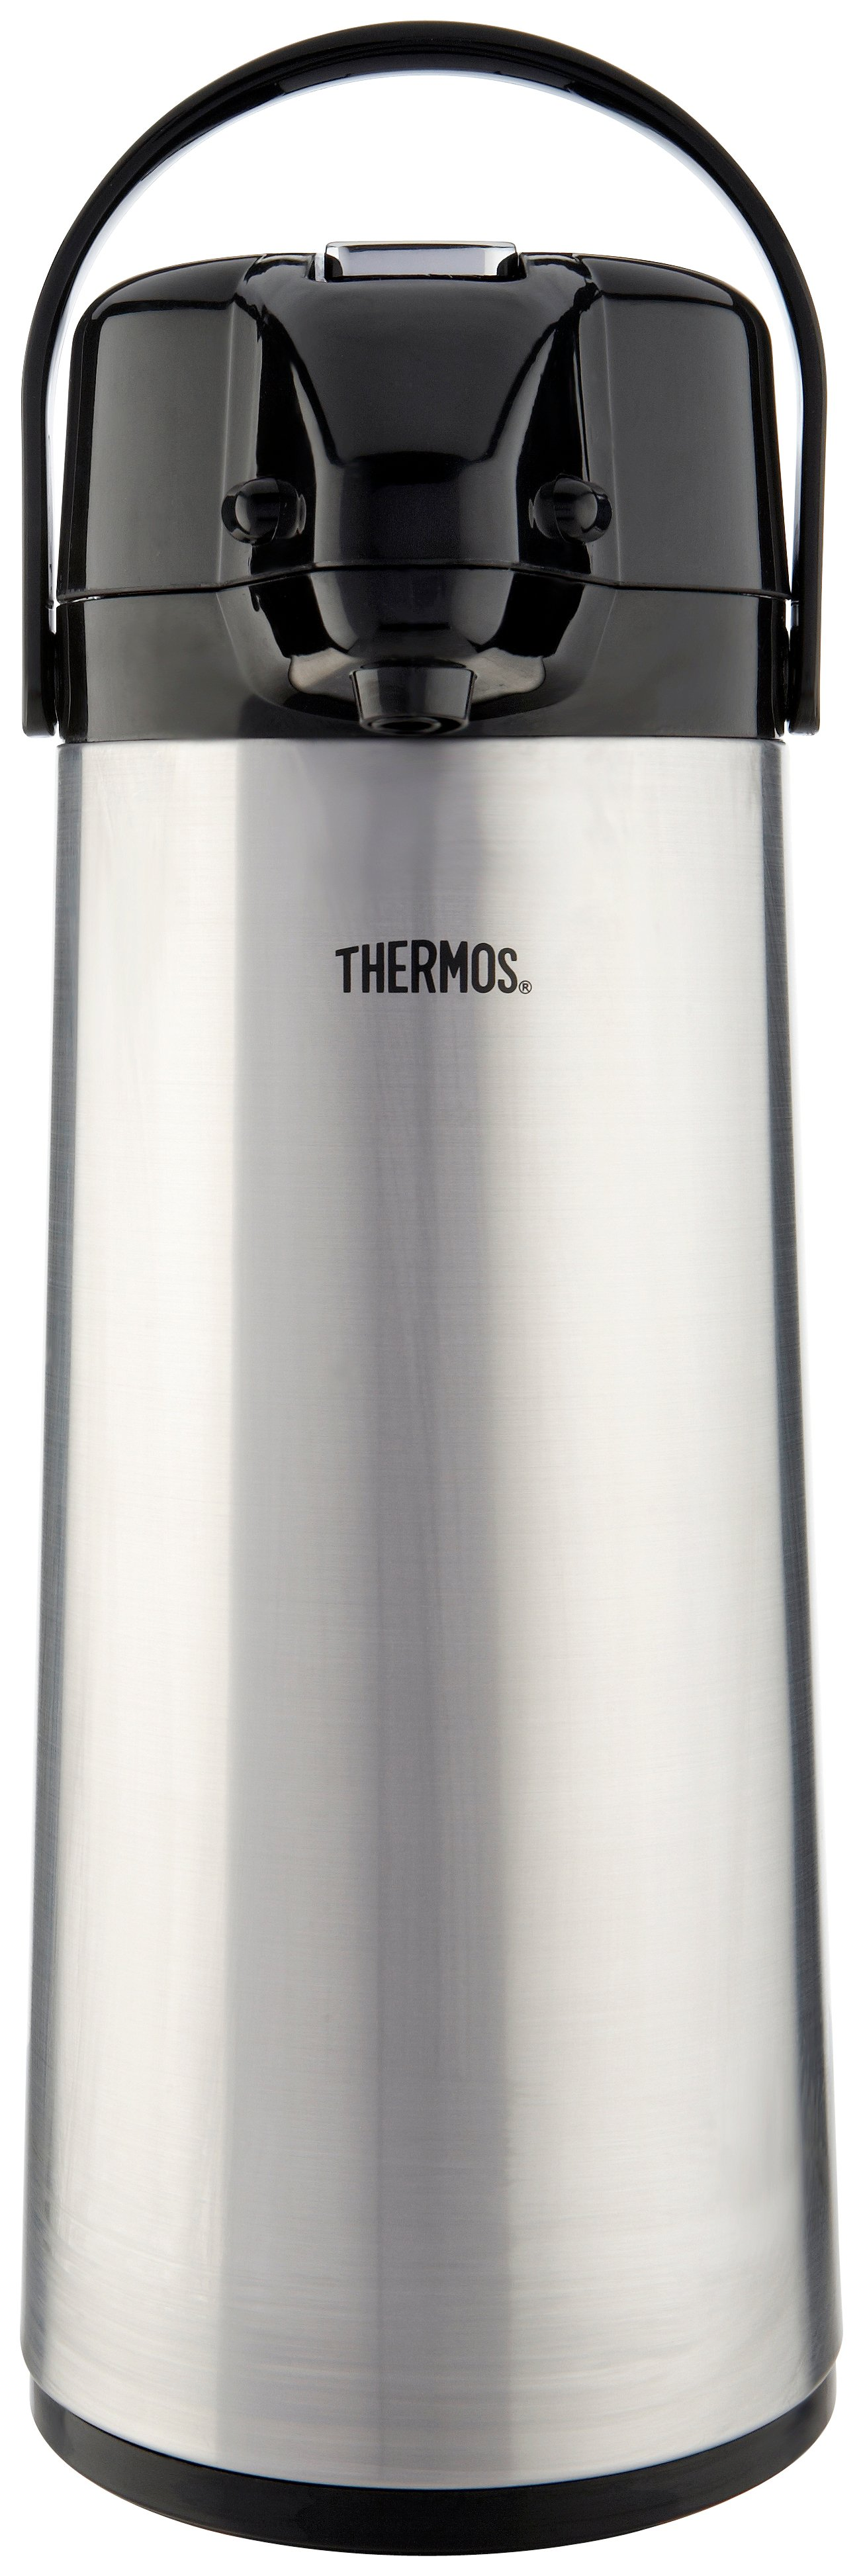 Image of Thermos Lever Action Pump Pot - 2.5L.